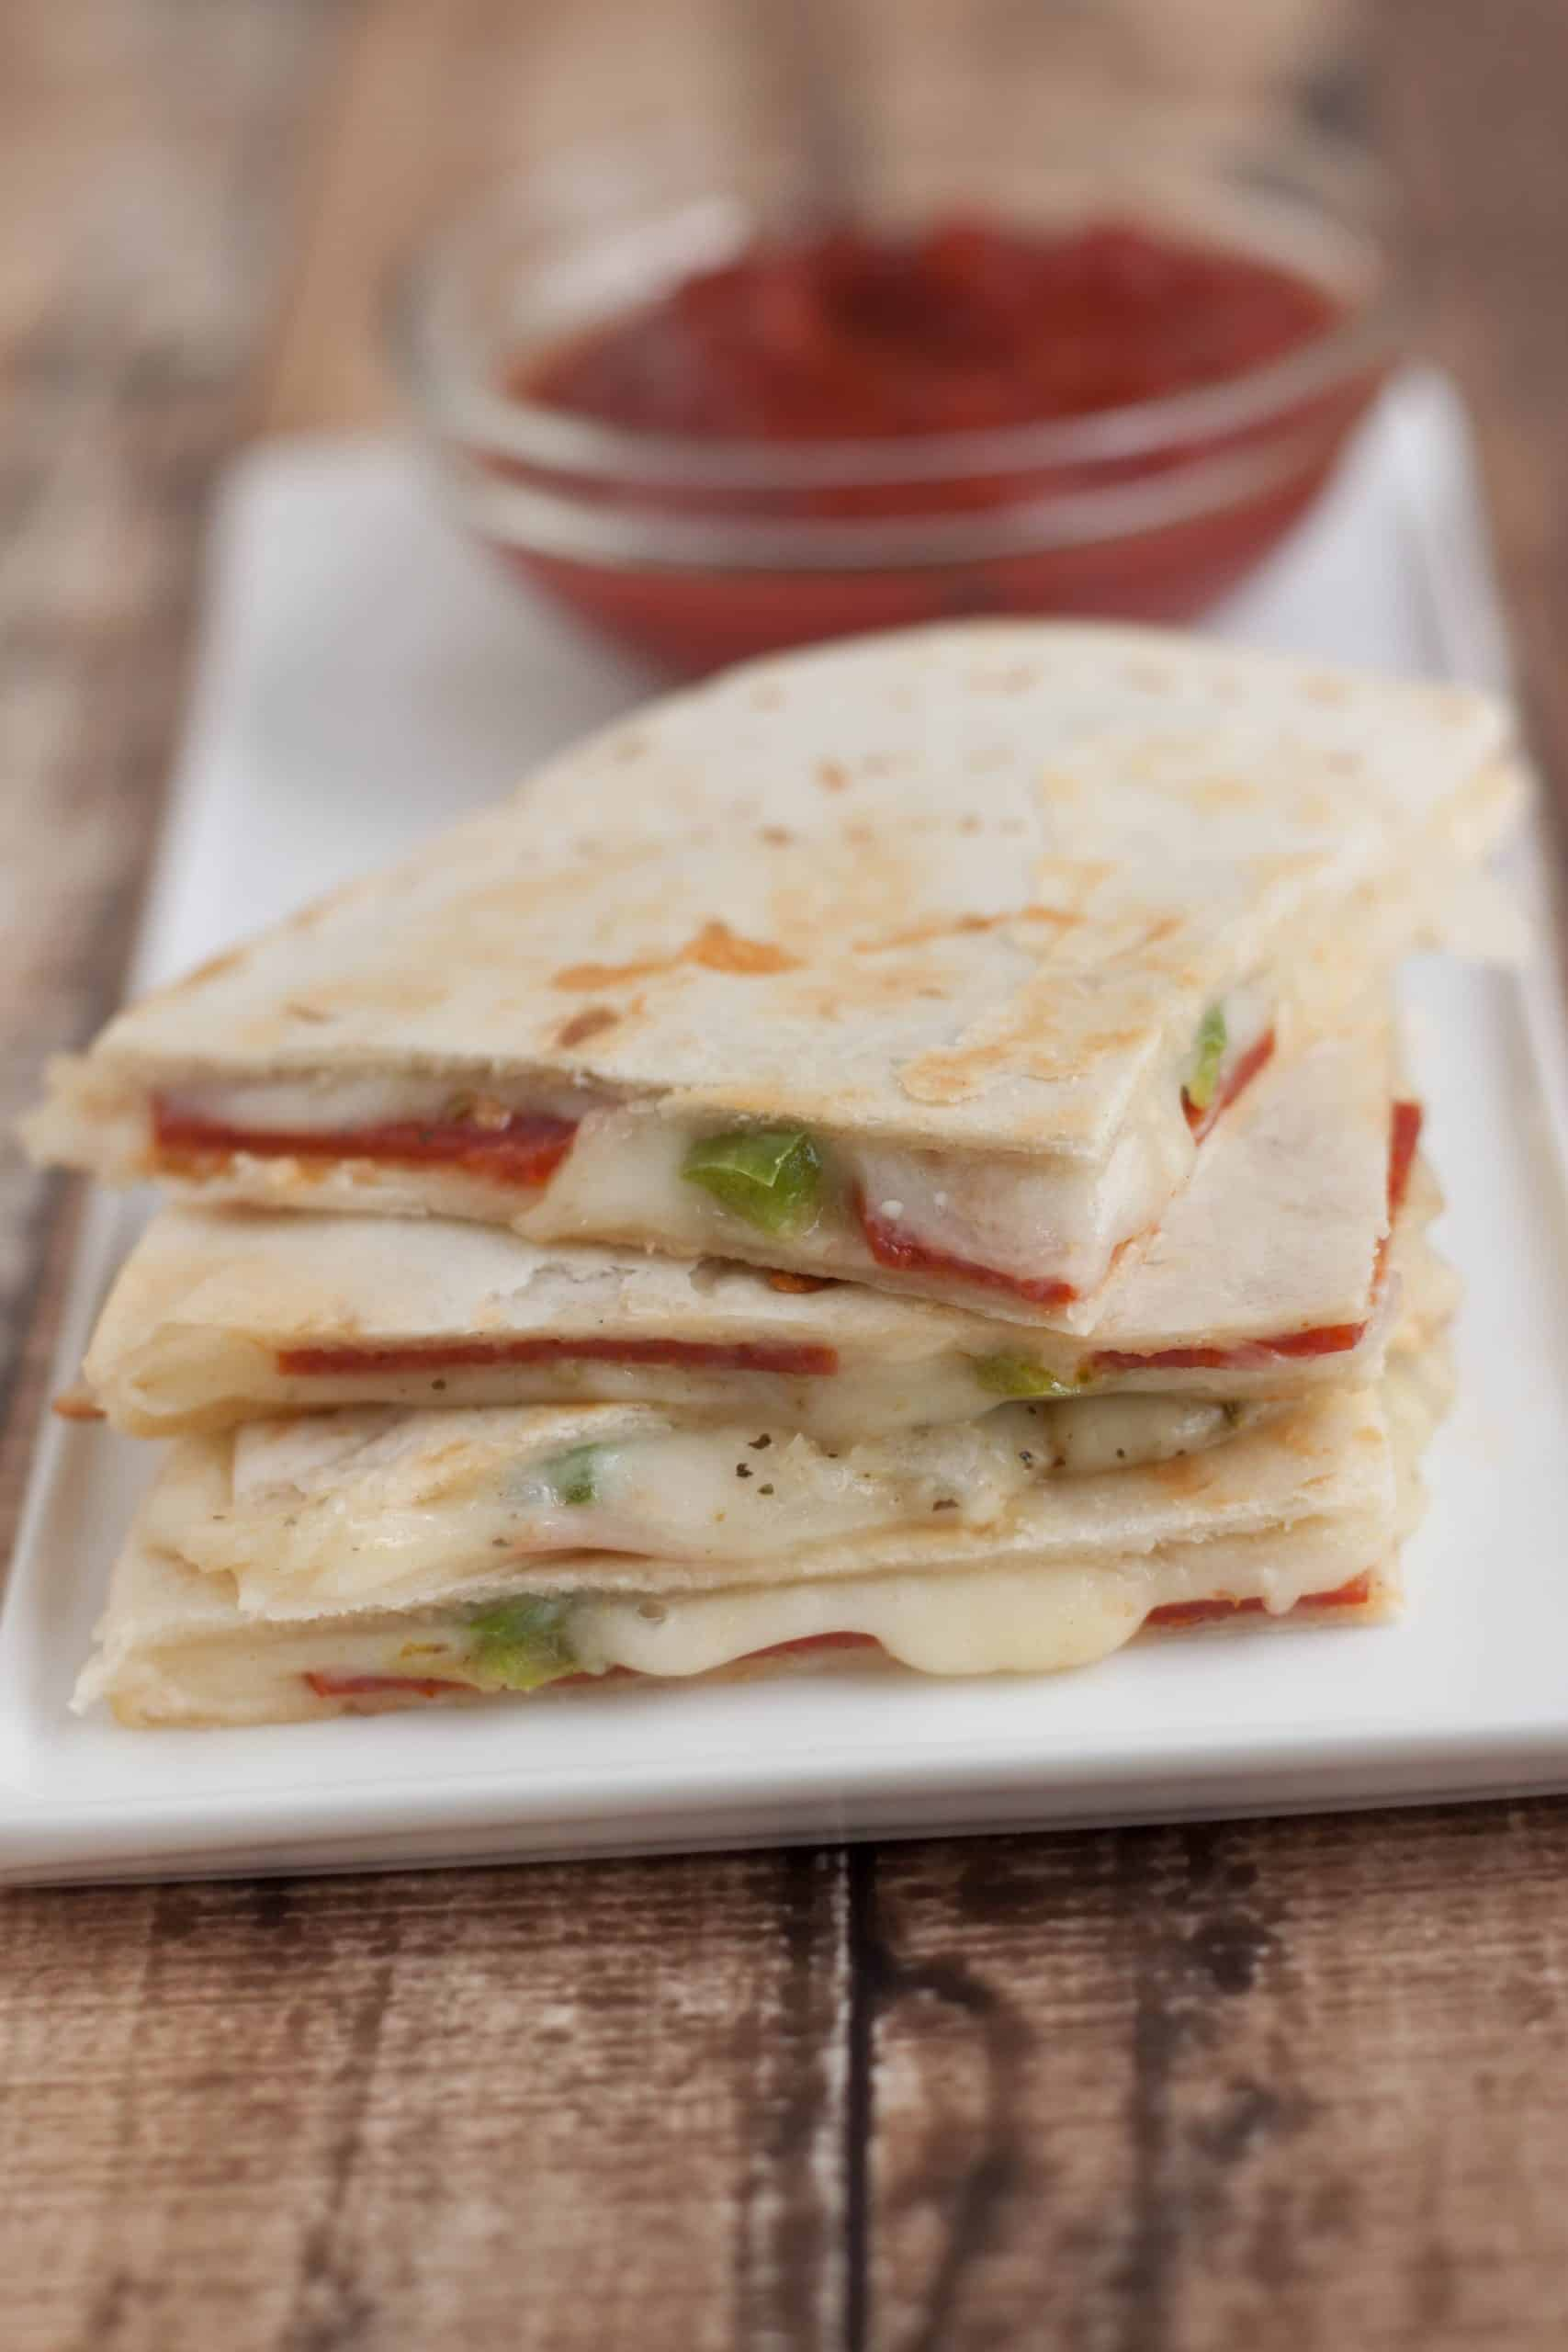 Image of pepperoni pizza quesadilla triangle slices on a white plate with small bowl of pizza sauce for dipping.